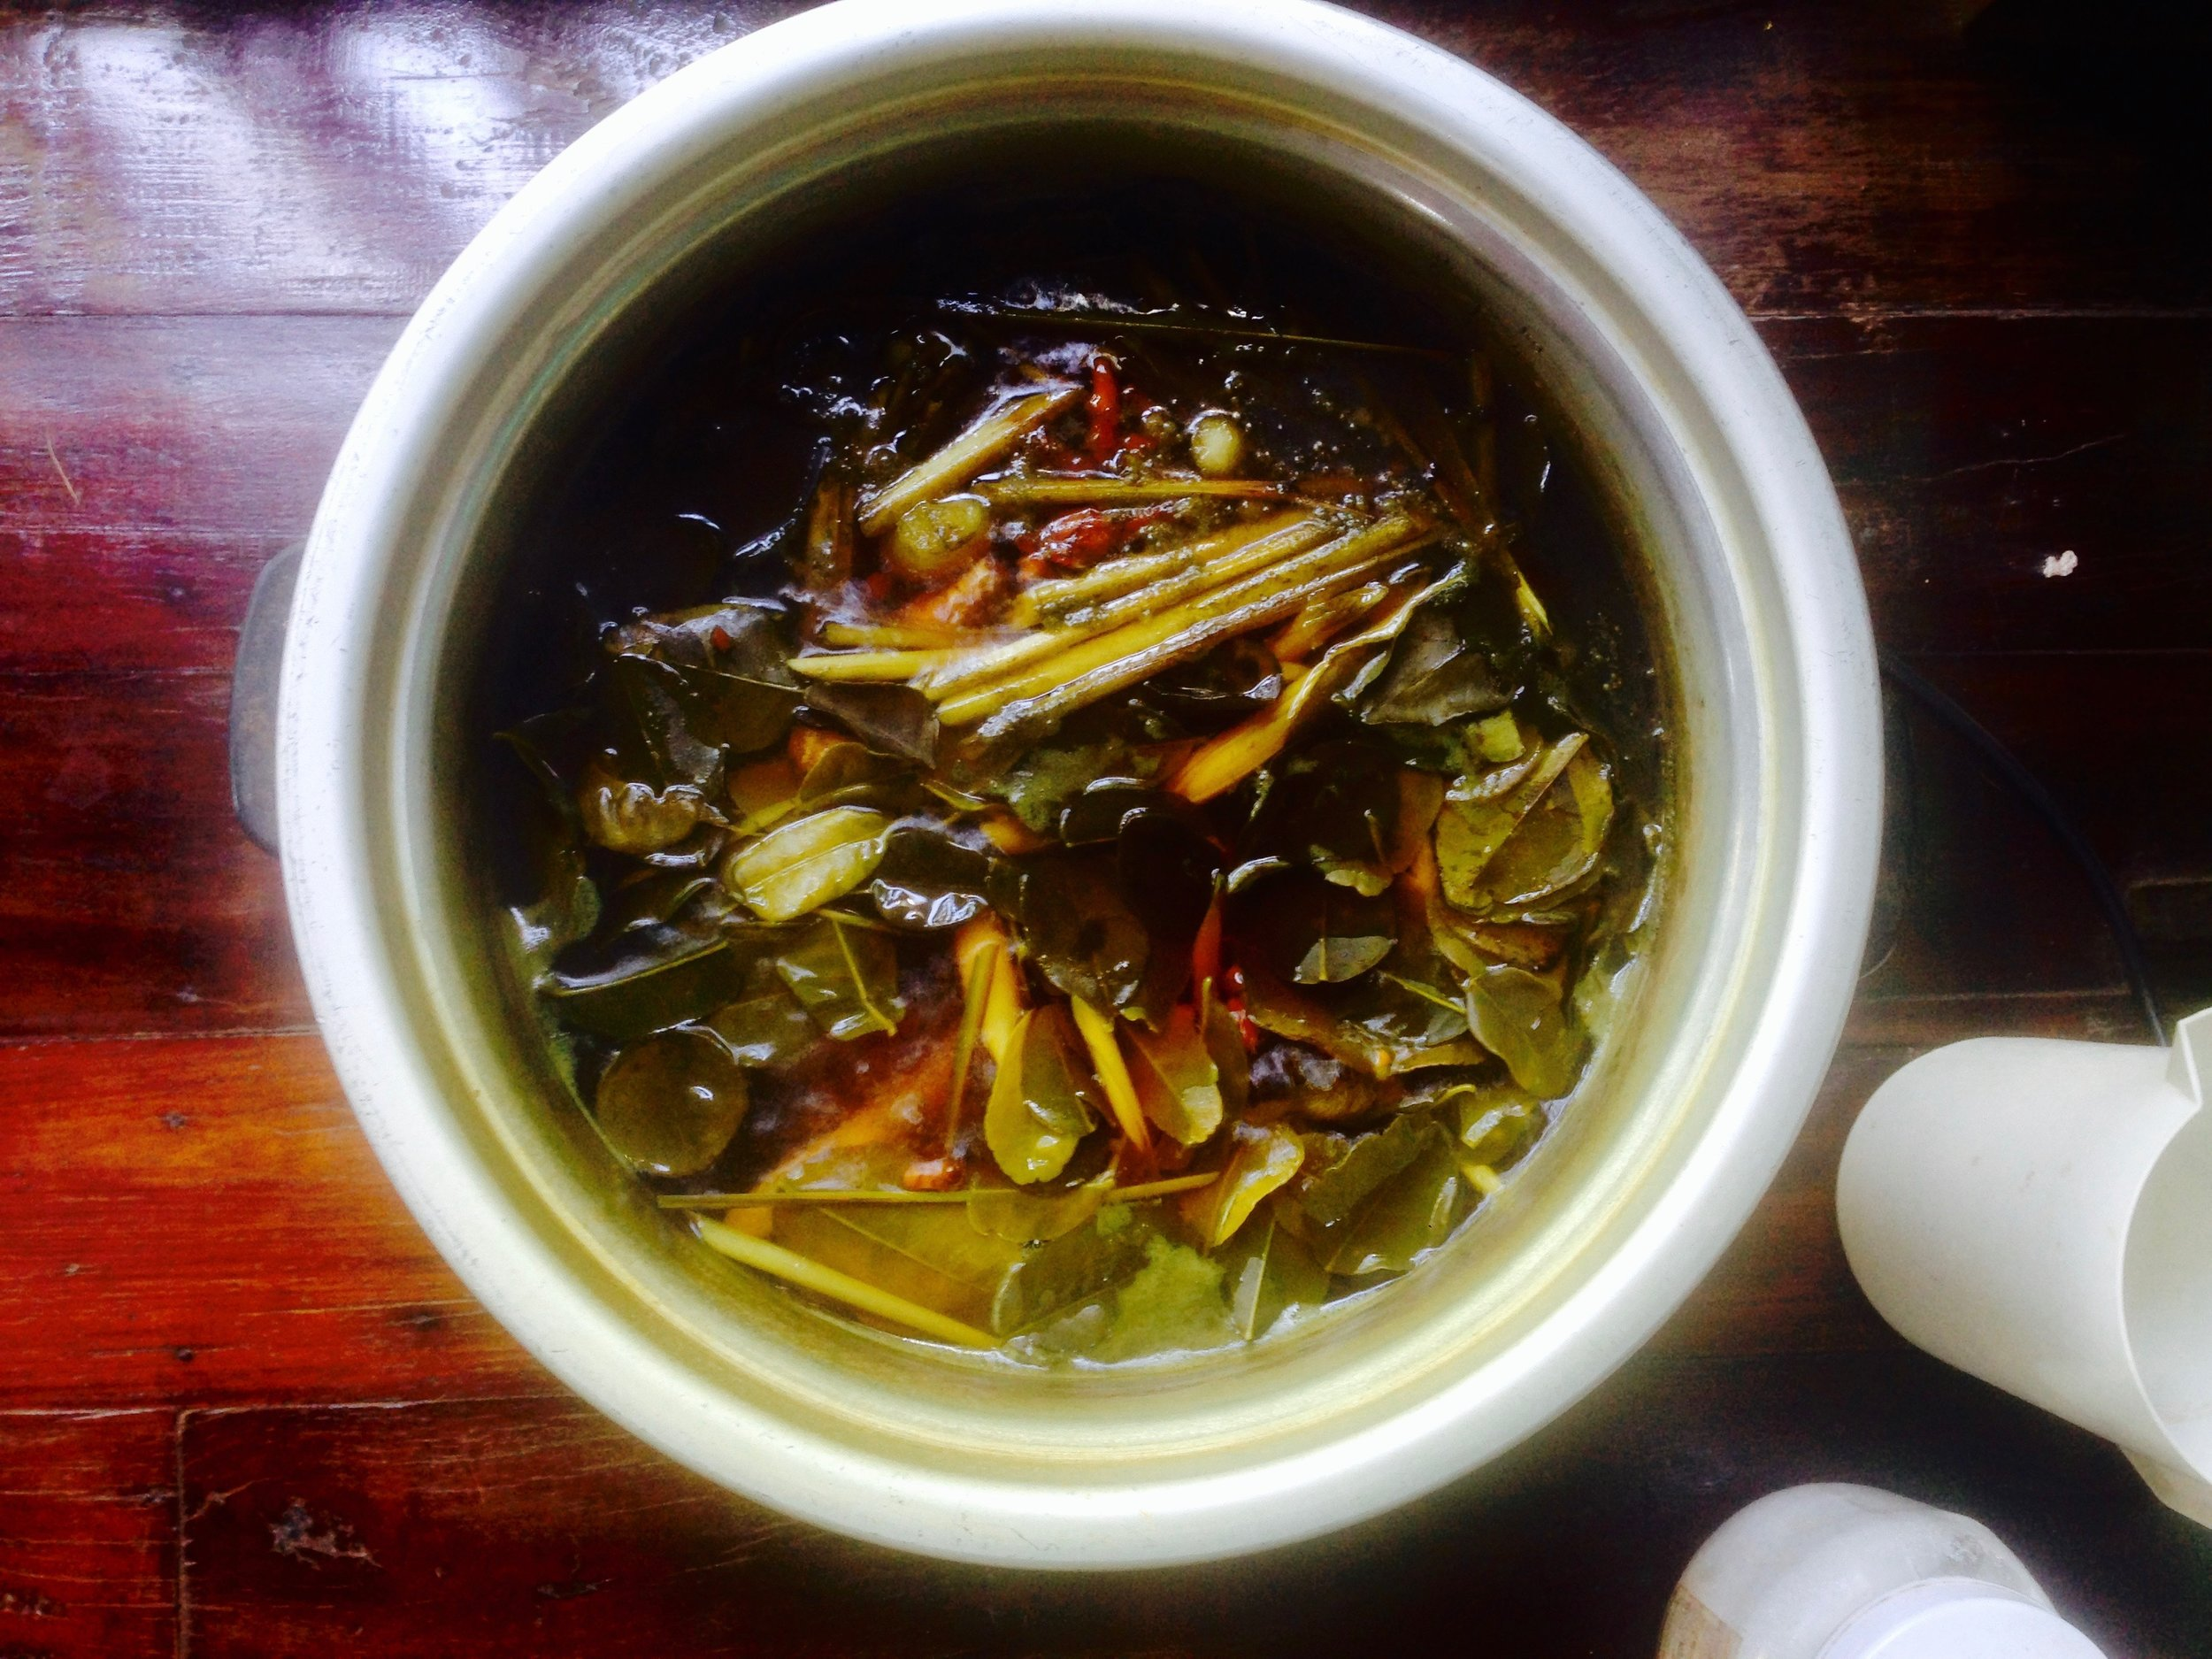 The spa staff brewed up daily lemongrass herbal aromatic steam, which I breathed in daily on my way to the detox counter